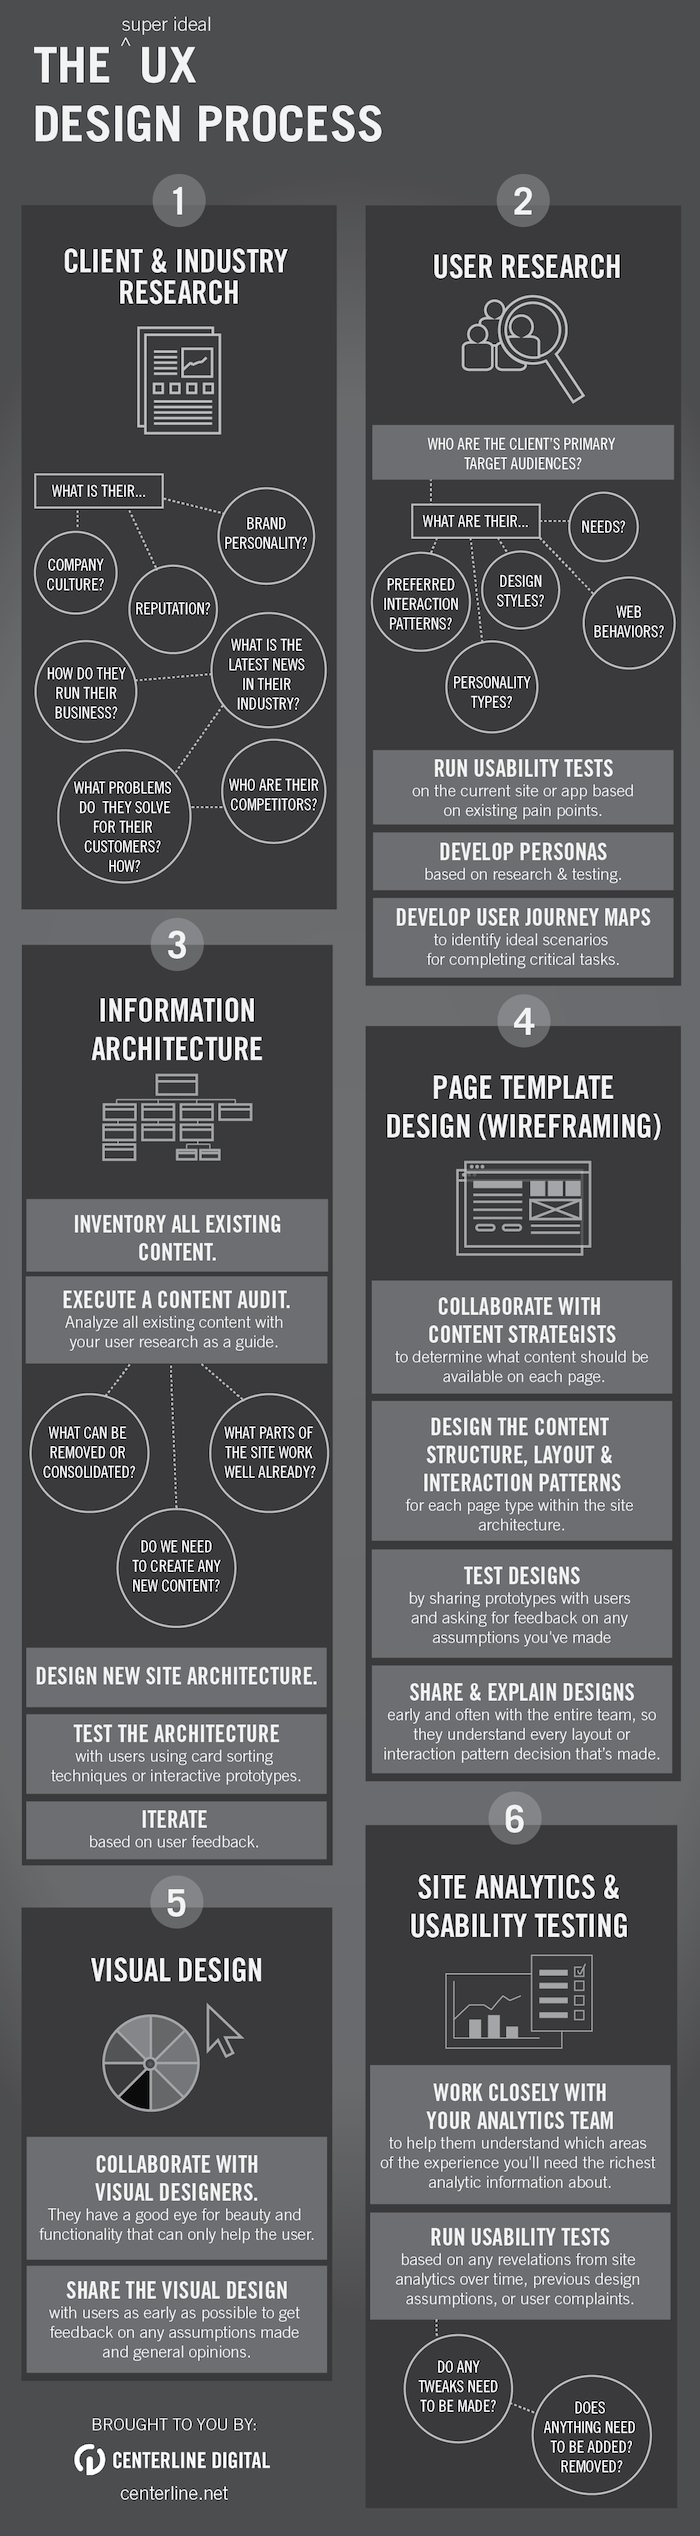 This infographic was created to show the UX expertise of Centerline's UX professionals. It was done during my role as Marketing Coordinator at Centerline Digital.